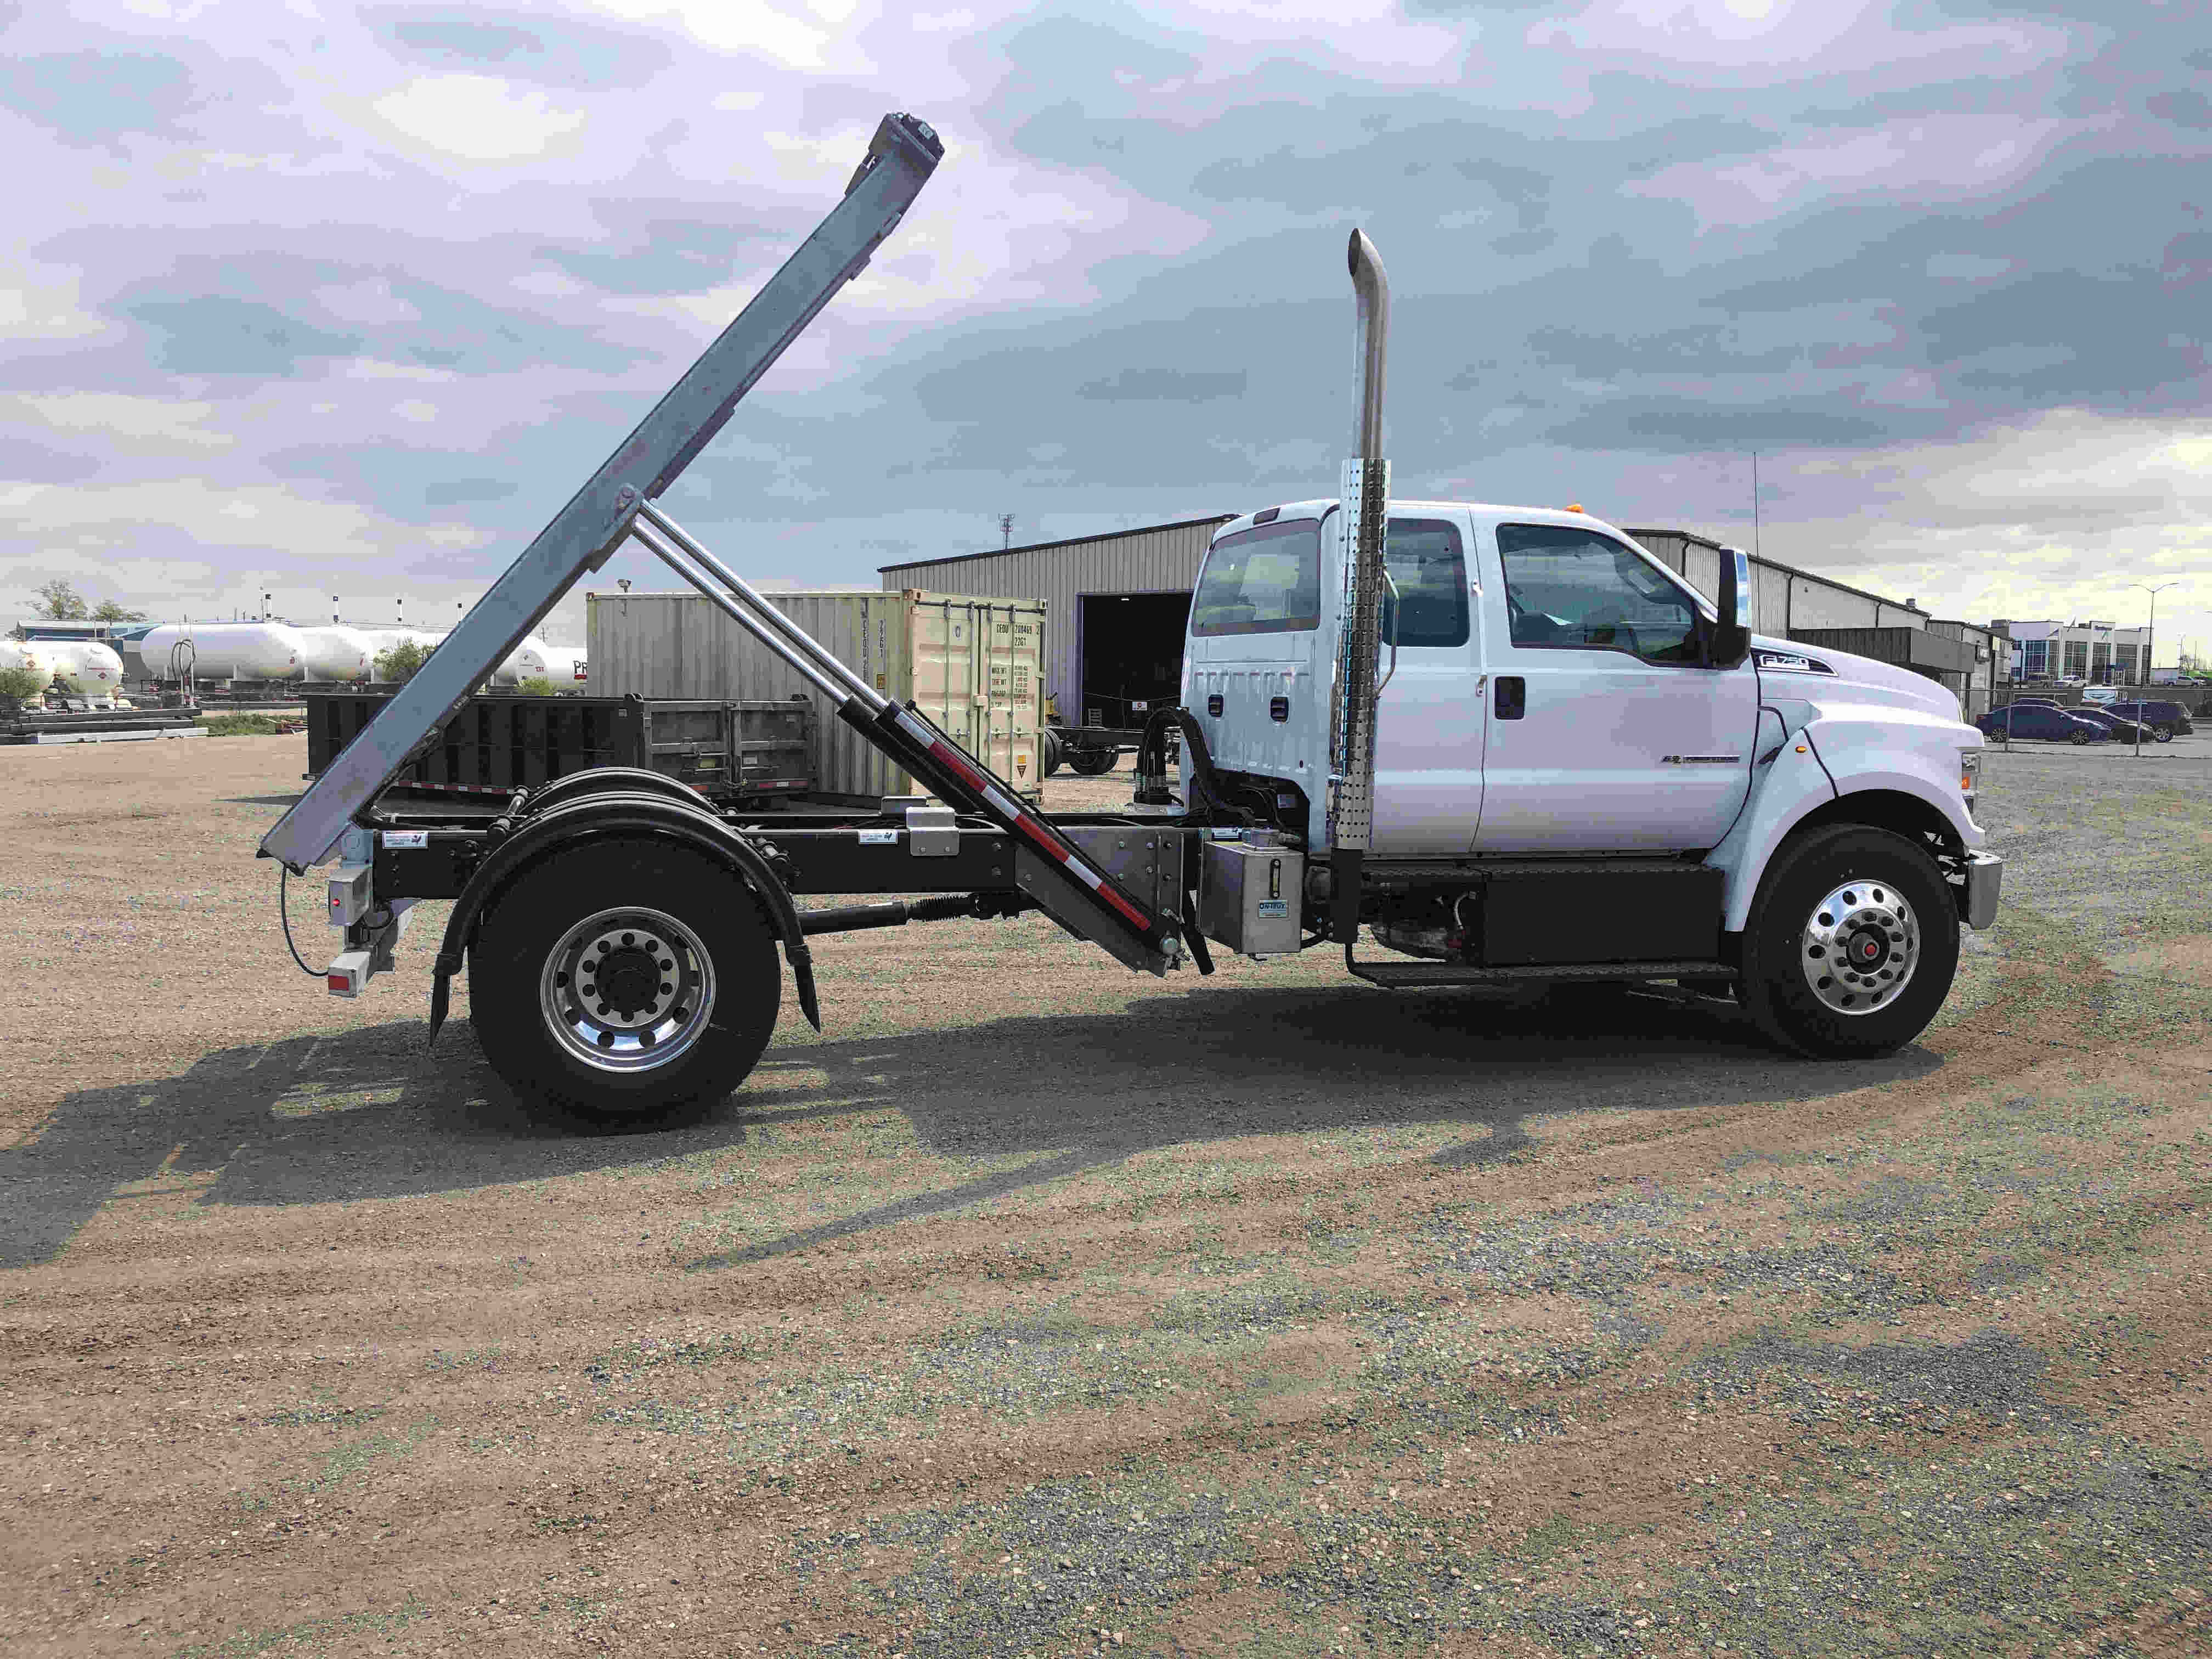 2021 Ford F750 12 On Trux System White (6)